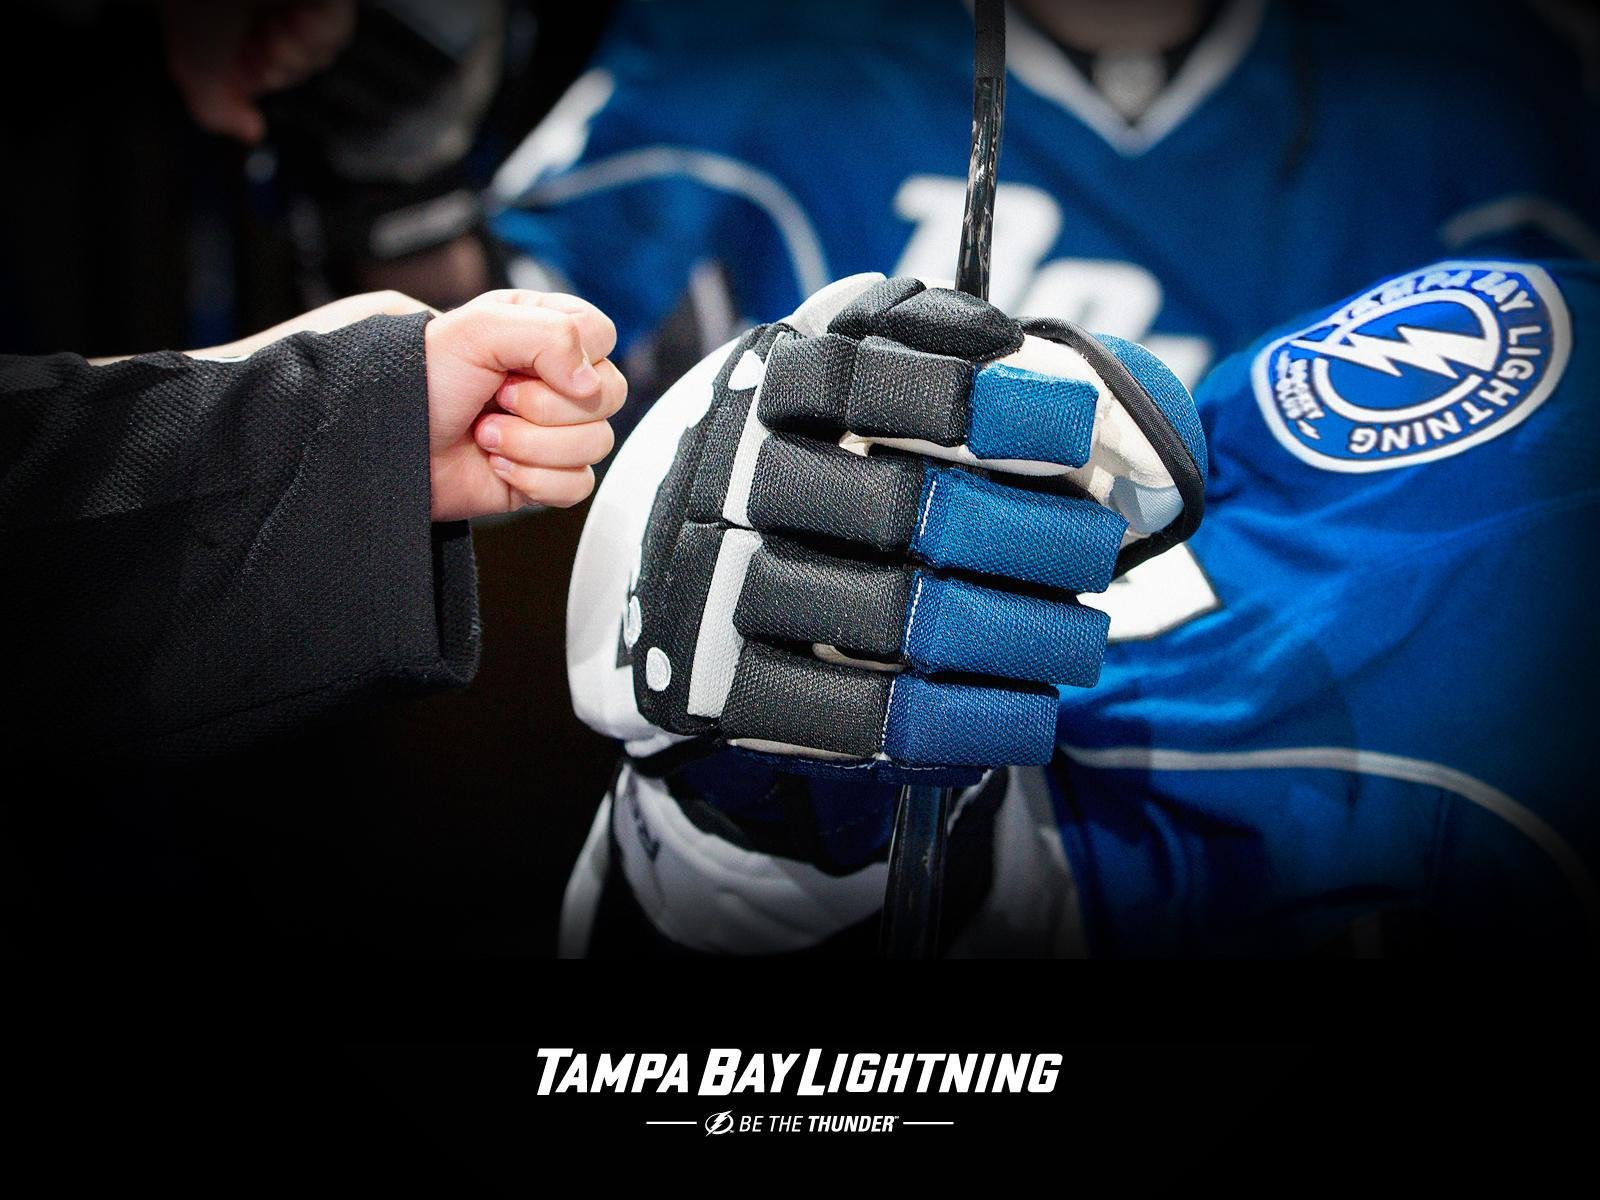 TAMPA BAY LIGHTNING nhl hockey 41 wallpaper 1600x1200 349230 1600x1200